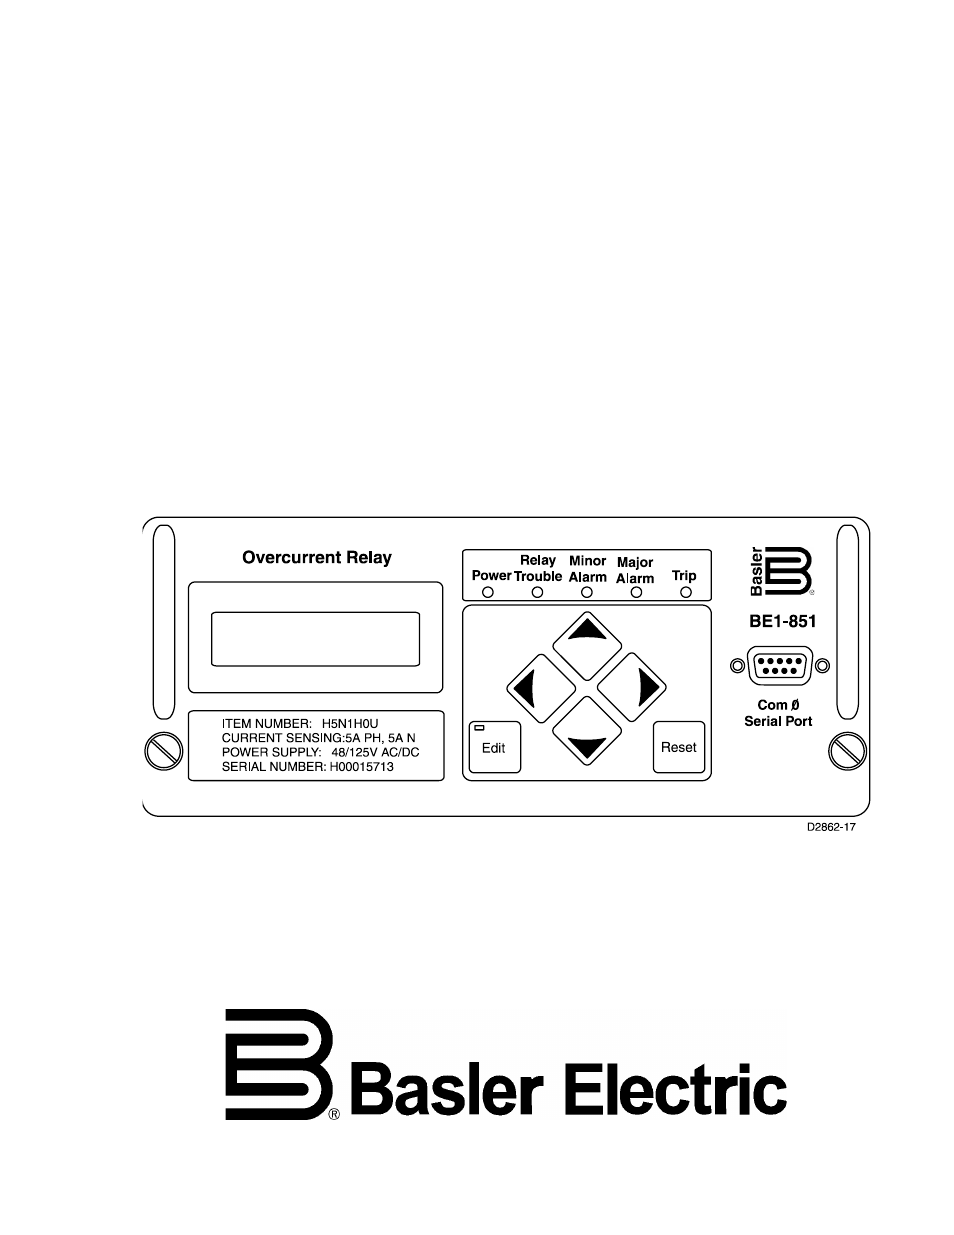 Basler Electric BE1-851 User Manual | 364 pages | Also for